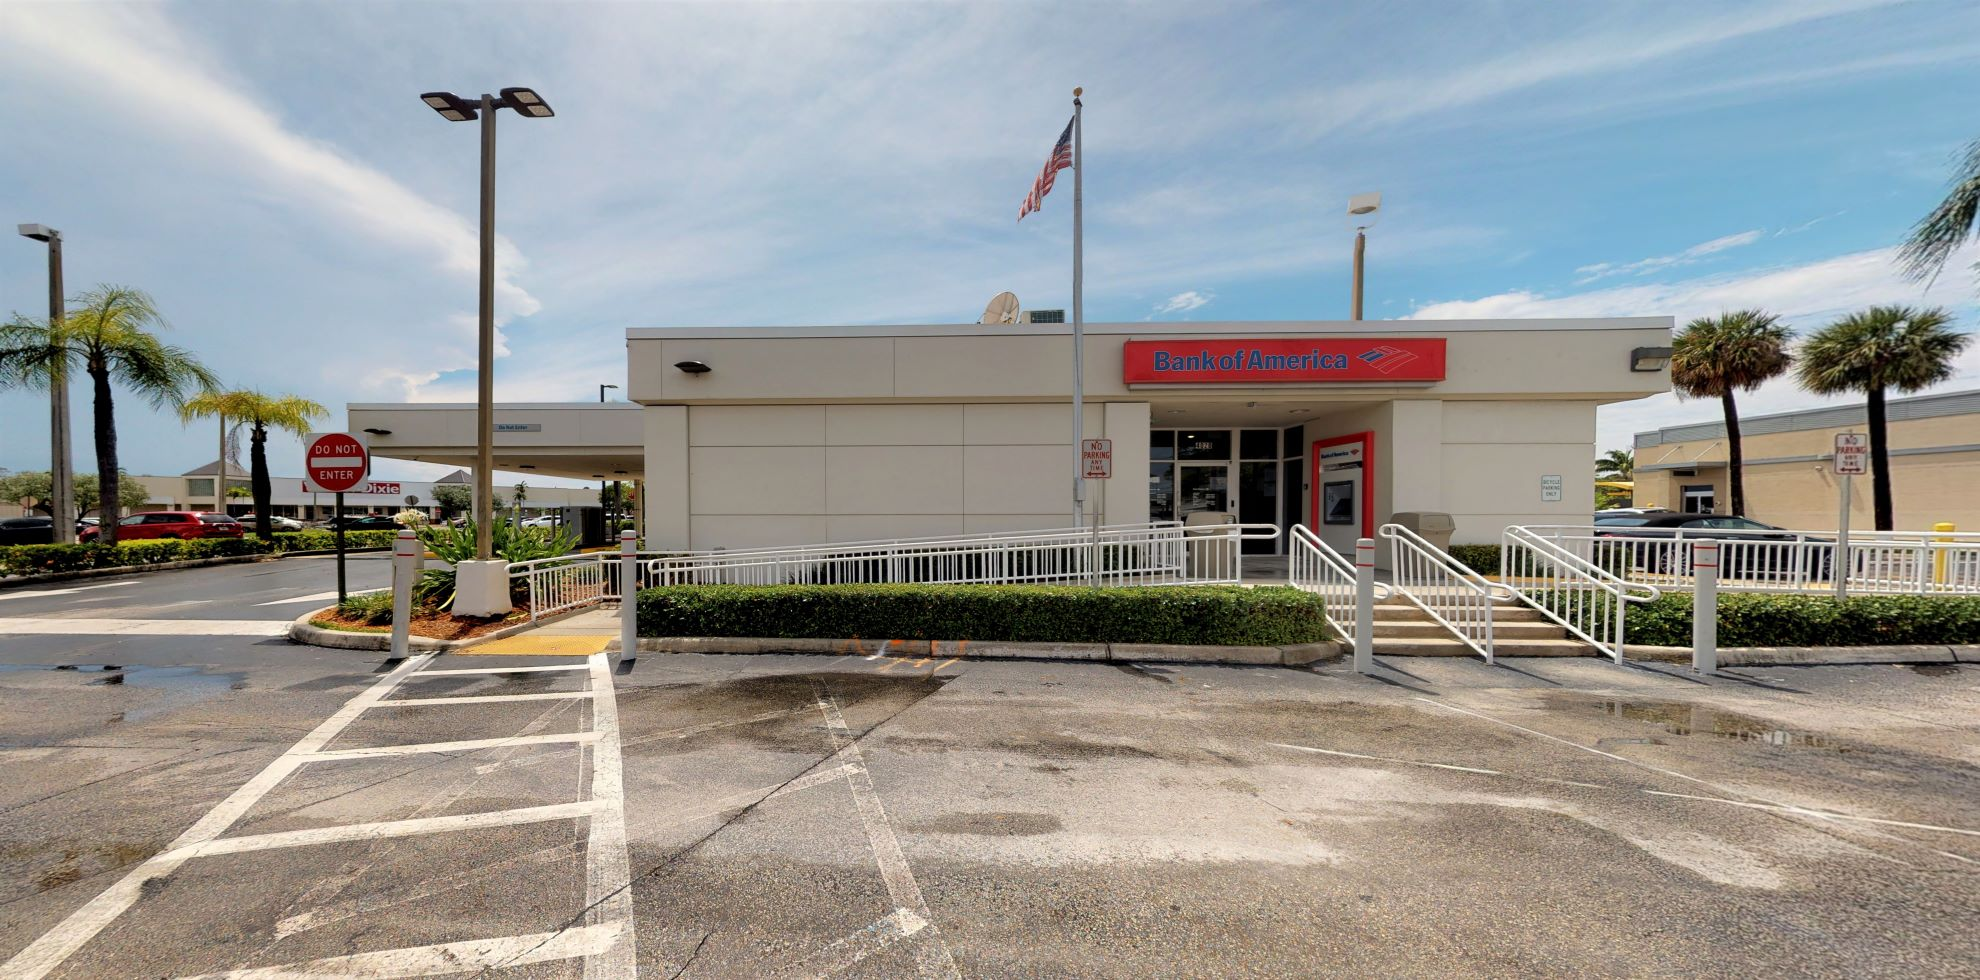 Bank of America financial center with drive-thru ATM and teller | 4020 SW 67th Ave, Miami, FL 33155